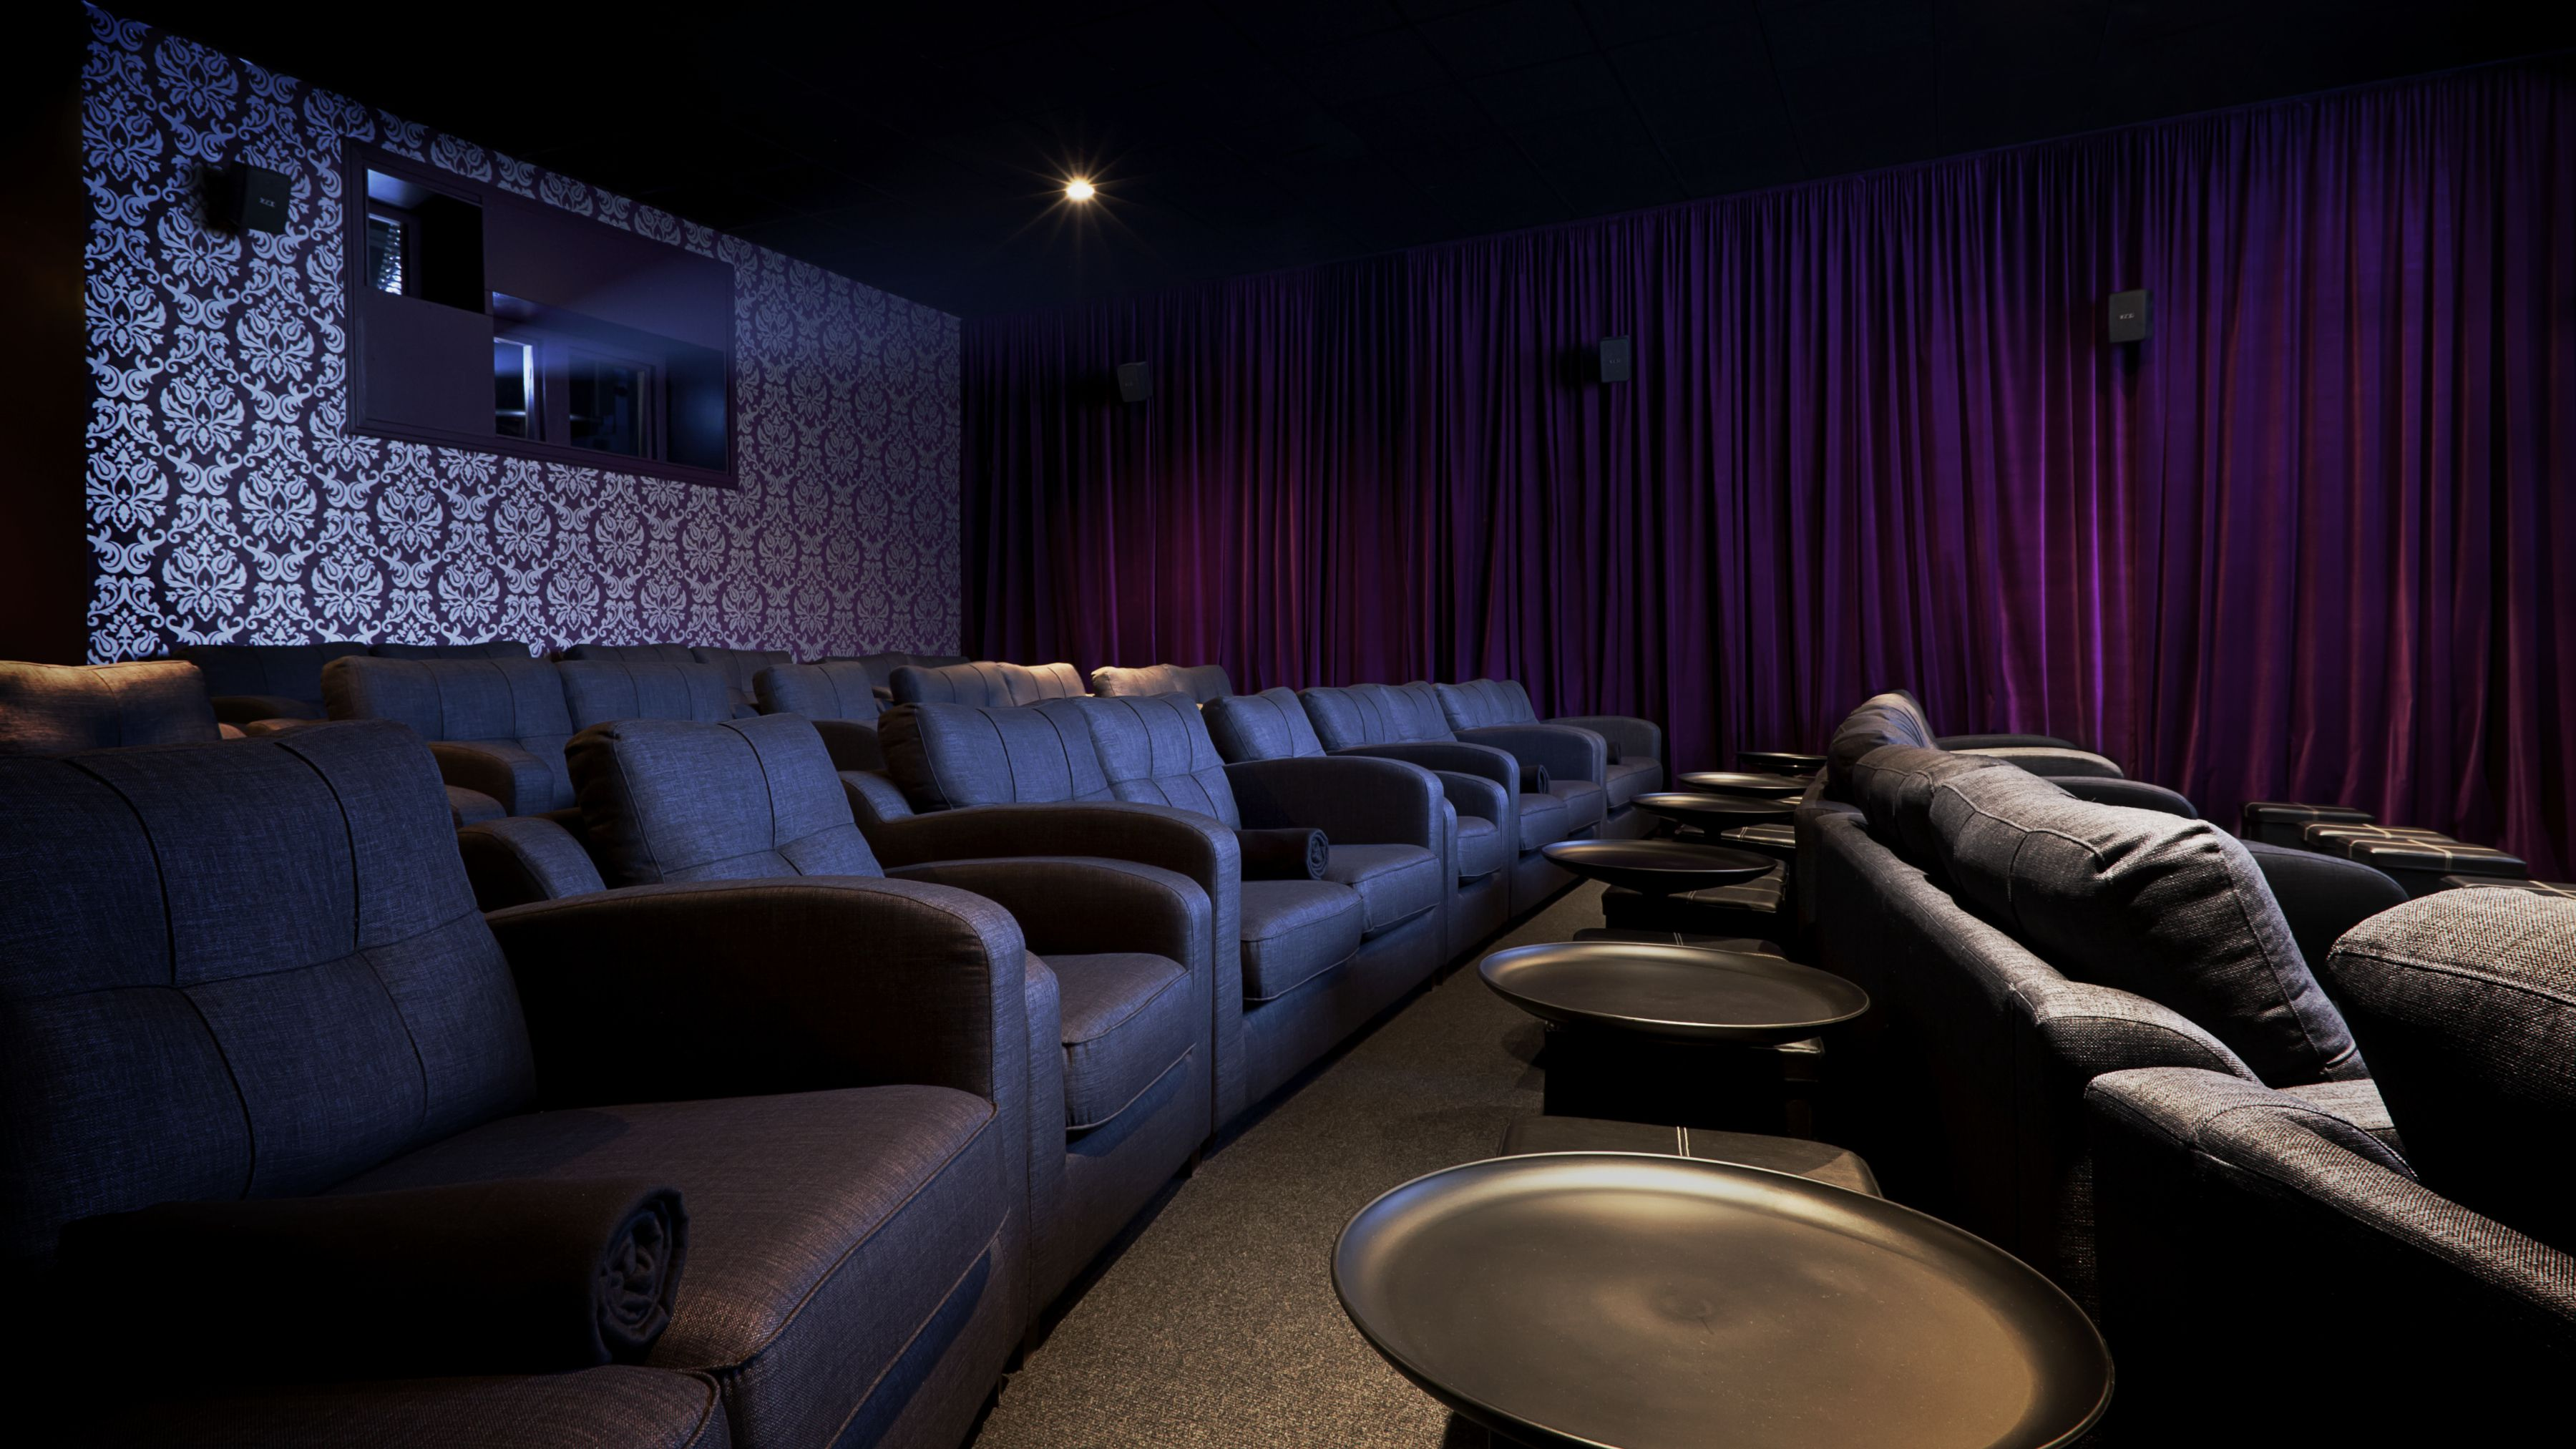 Genesis Studio 5 Mile End Luxury Seating Cinema Design